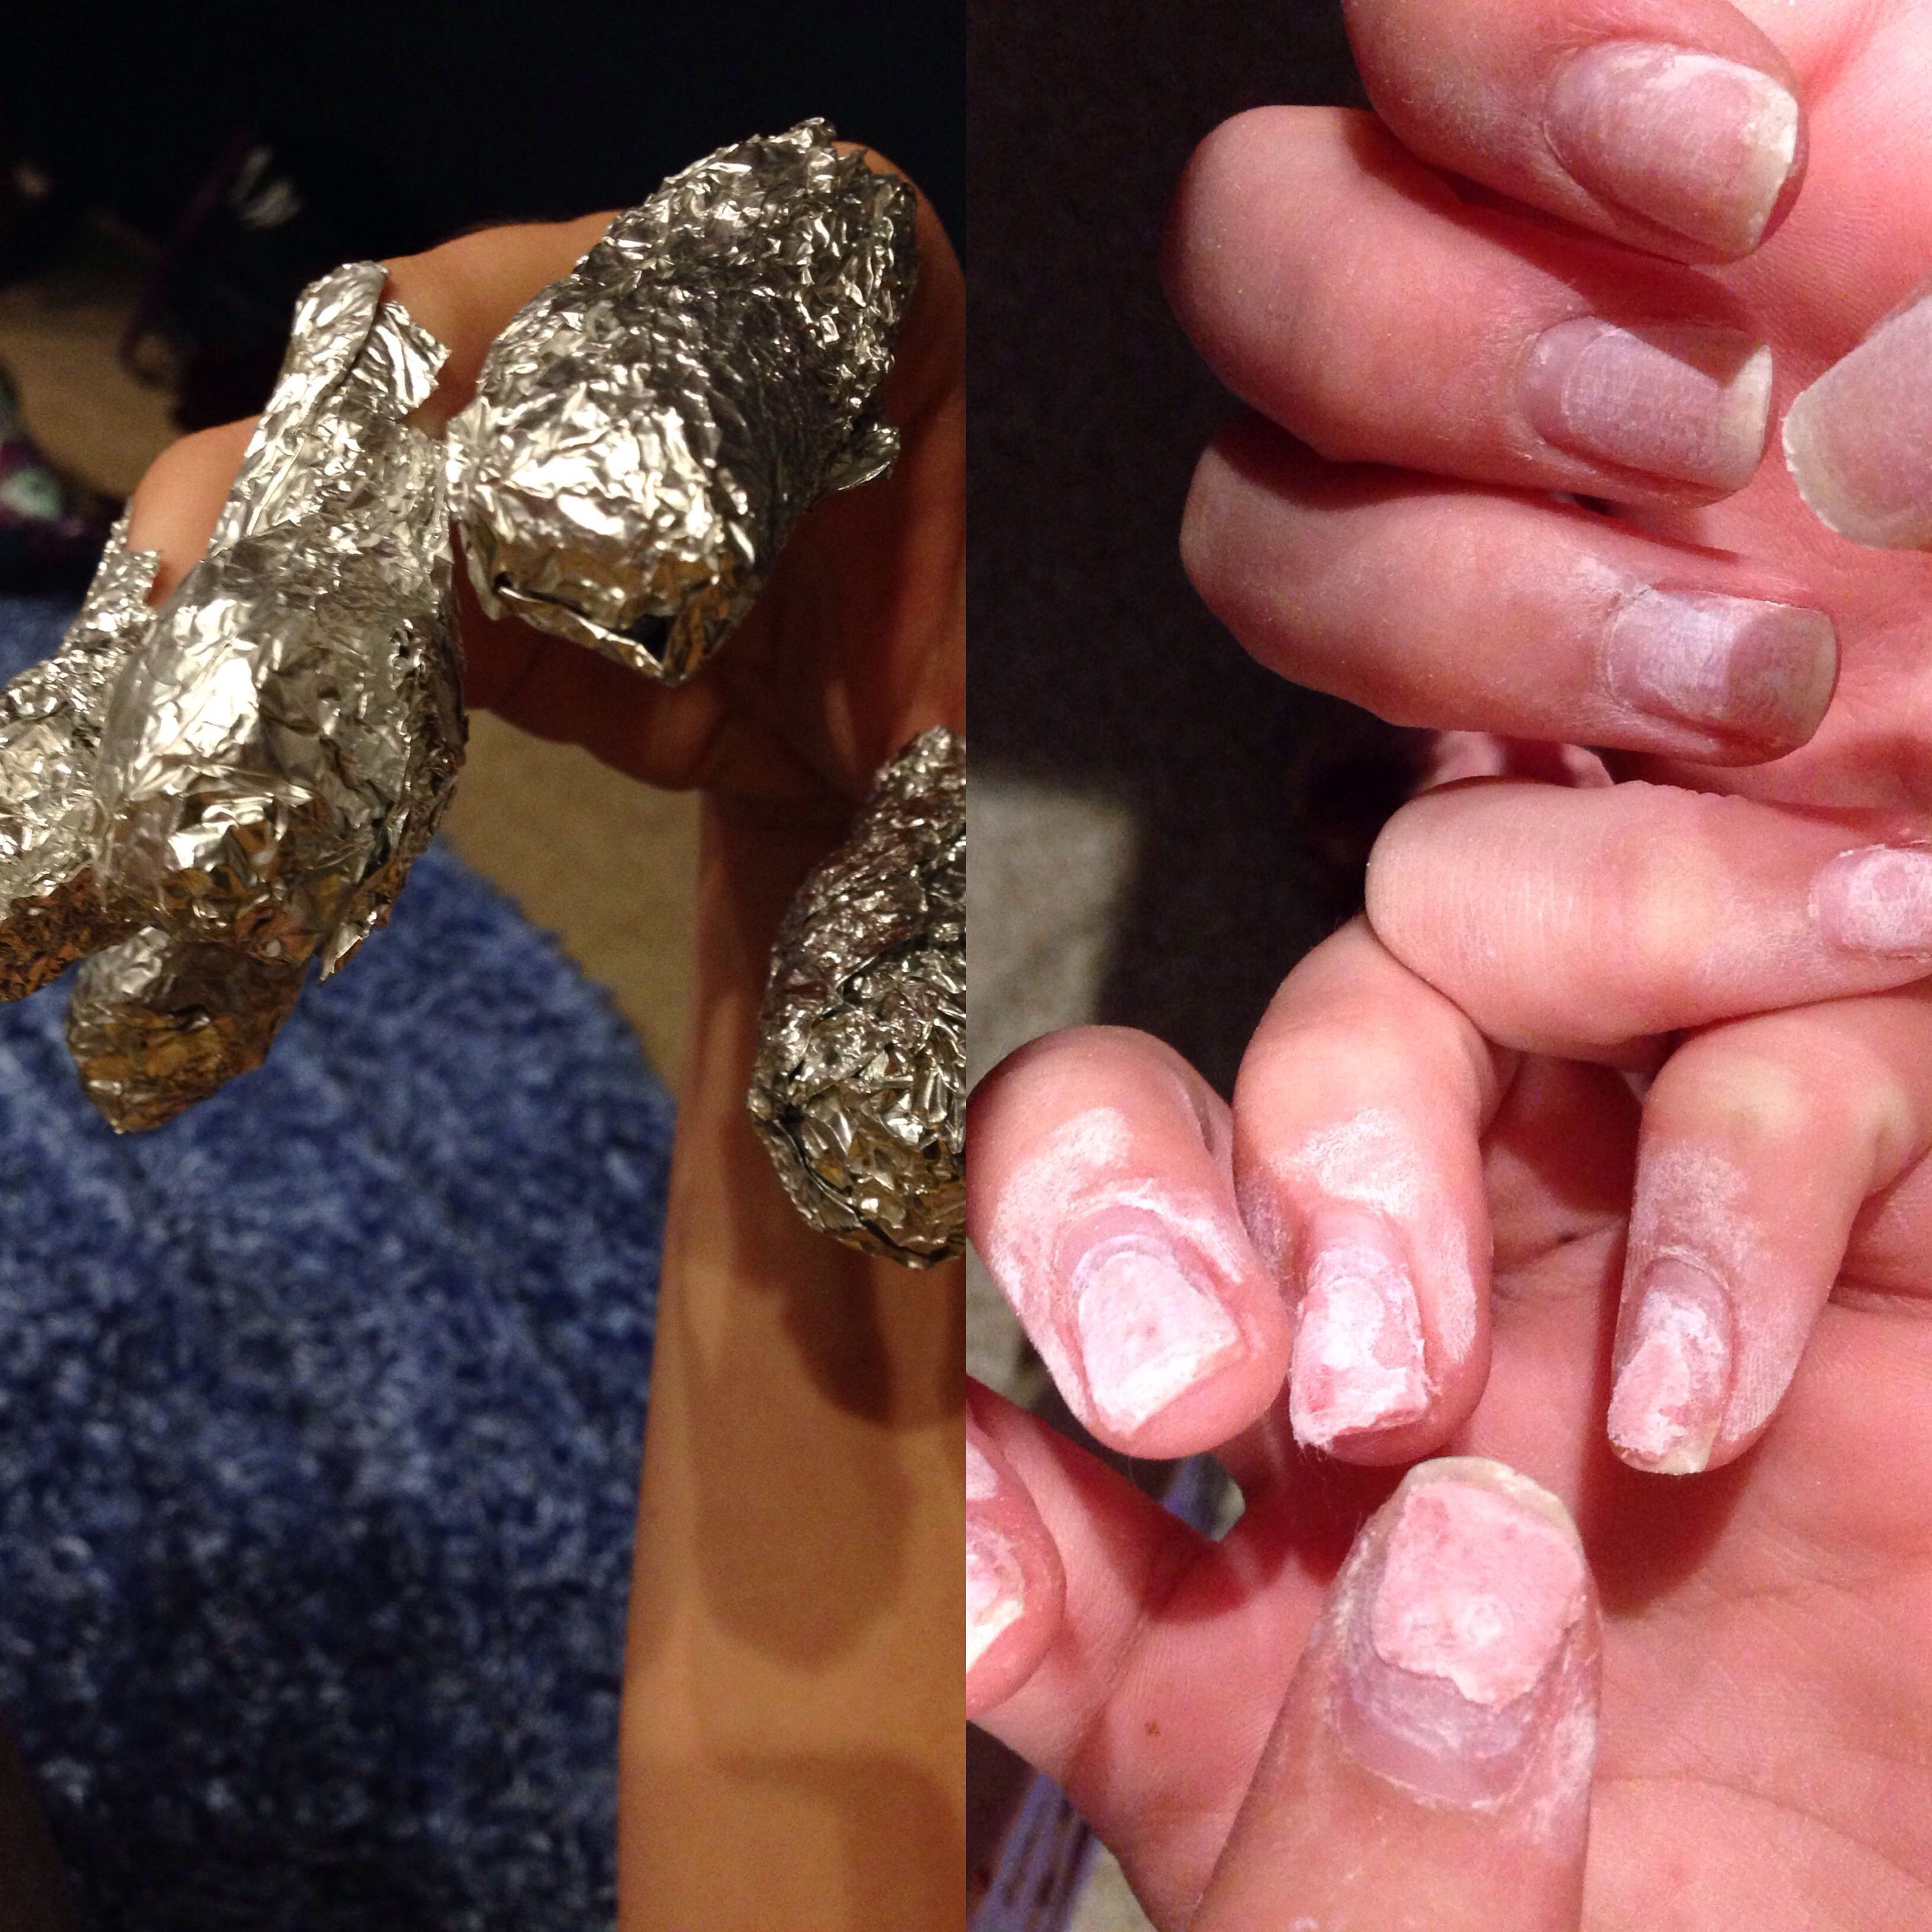 Tried To Take Off Acrylics With Acetone Nail Polish Remover Had To Sit For Hours At A Time With Stupid Tin Foil On Finge Nails Nail Polish Nail Polish Remover